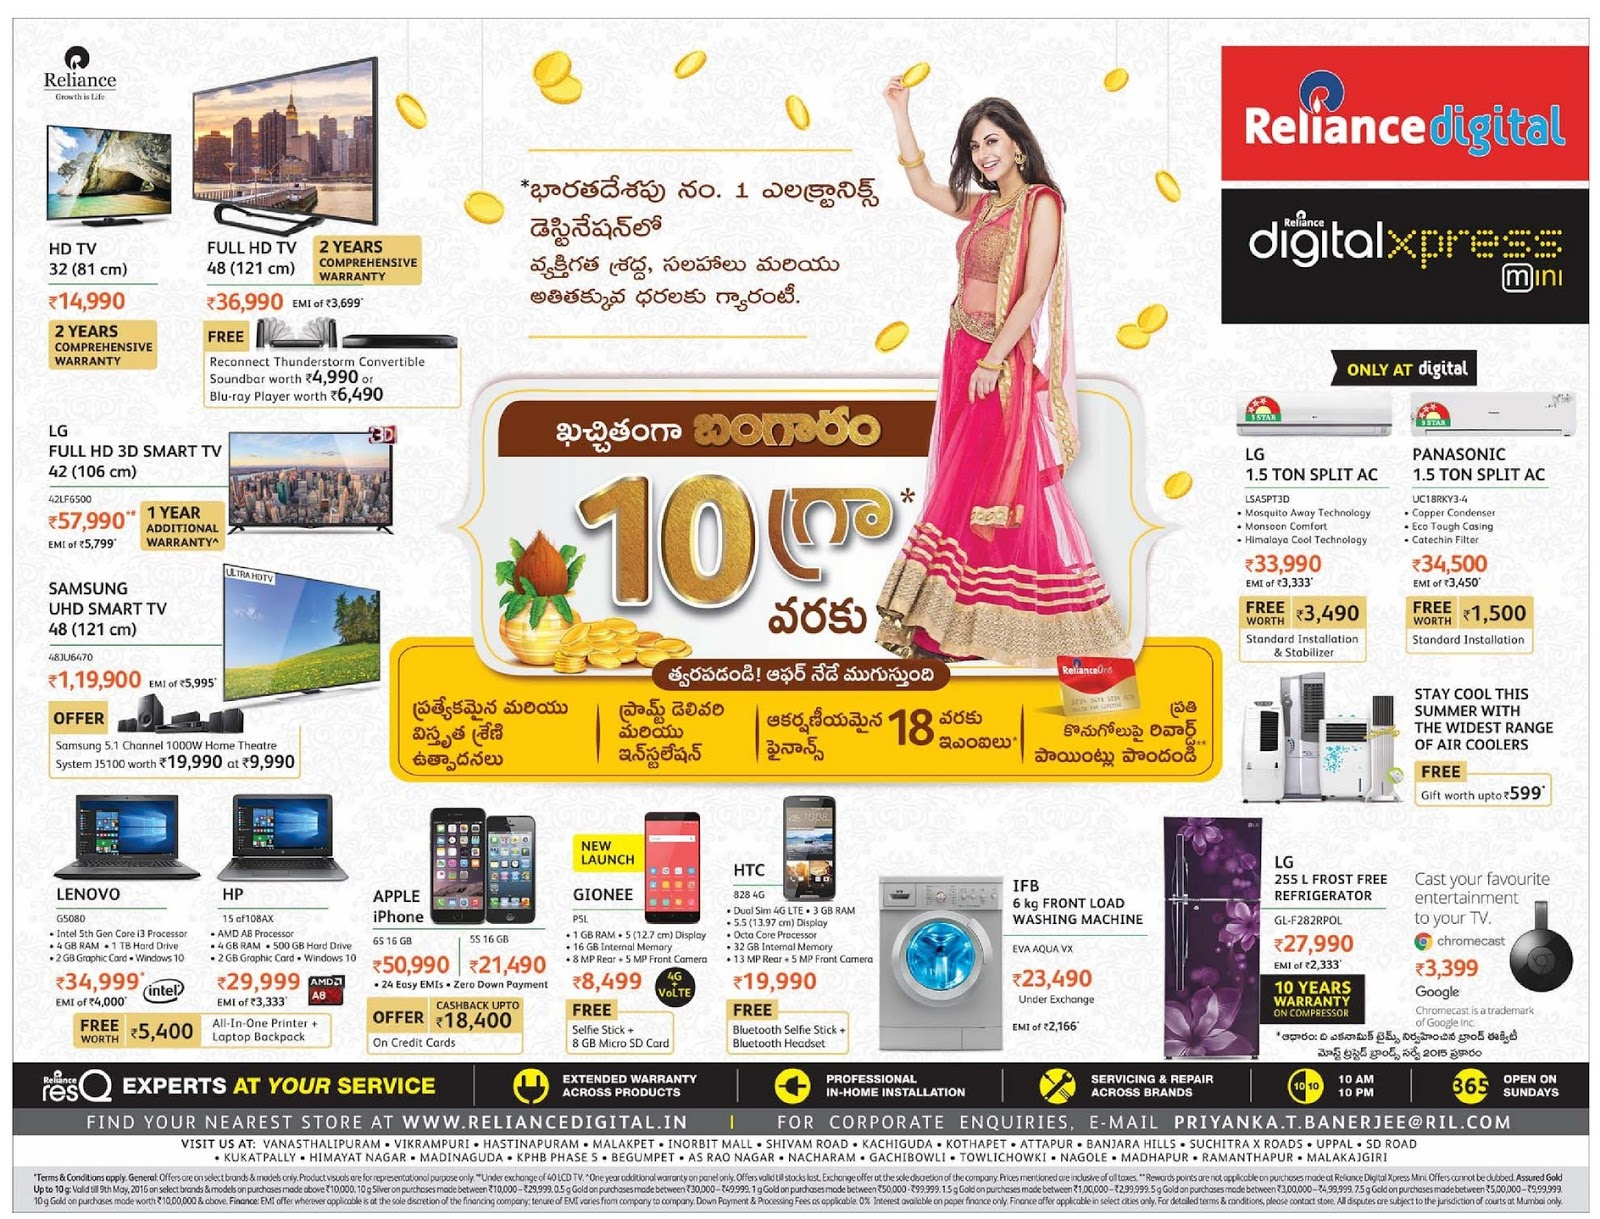 Get assured gold up to 10 grams in Reliance diital   Akshaya Tritiya gold discount offer in May 2016